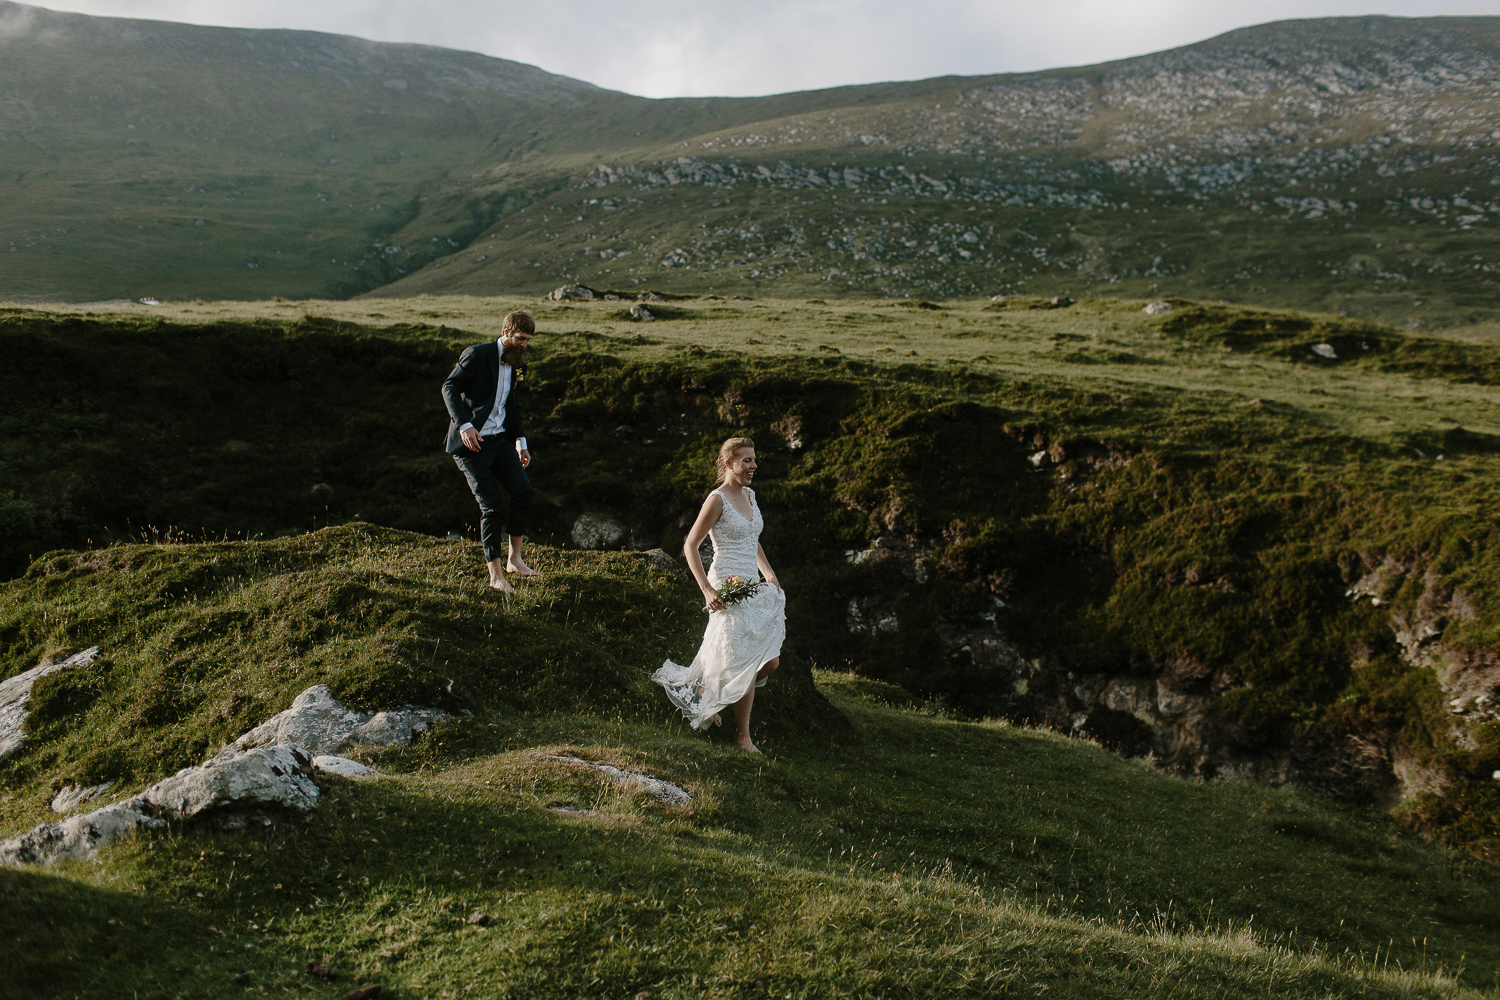 Achill-Island-Adventure-Wedding-Photographer-430.jpg